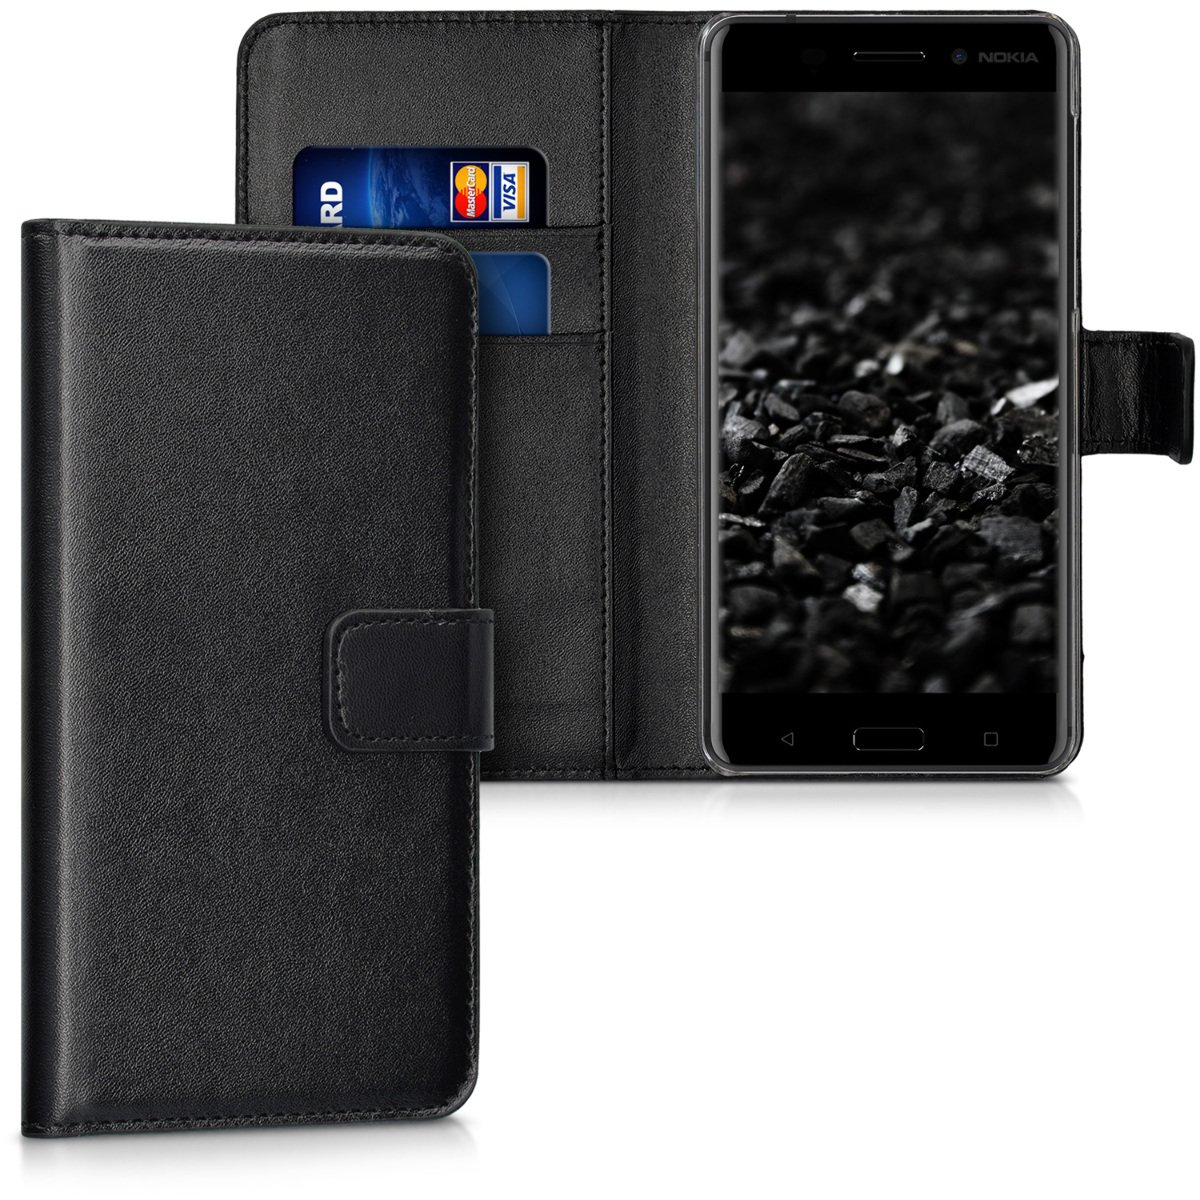 kwmobile Elegant synthetic leather case for the Nokia 6 with magnetic fastener and stand function in black